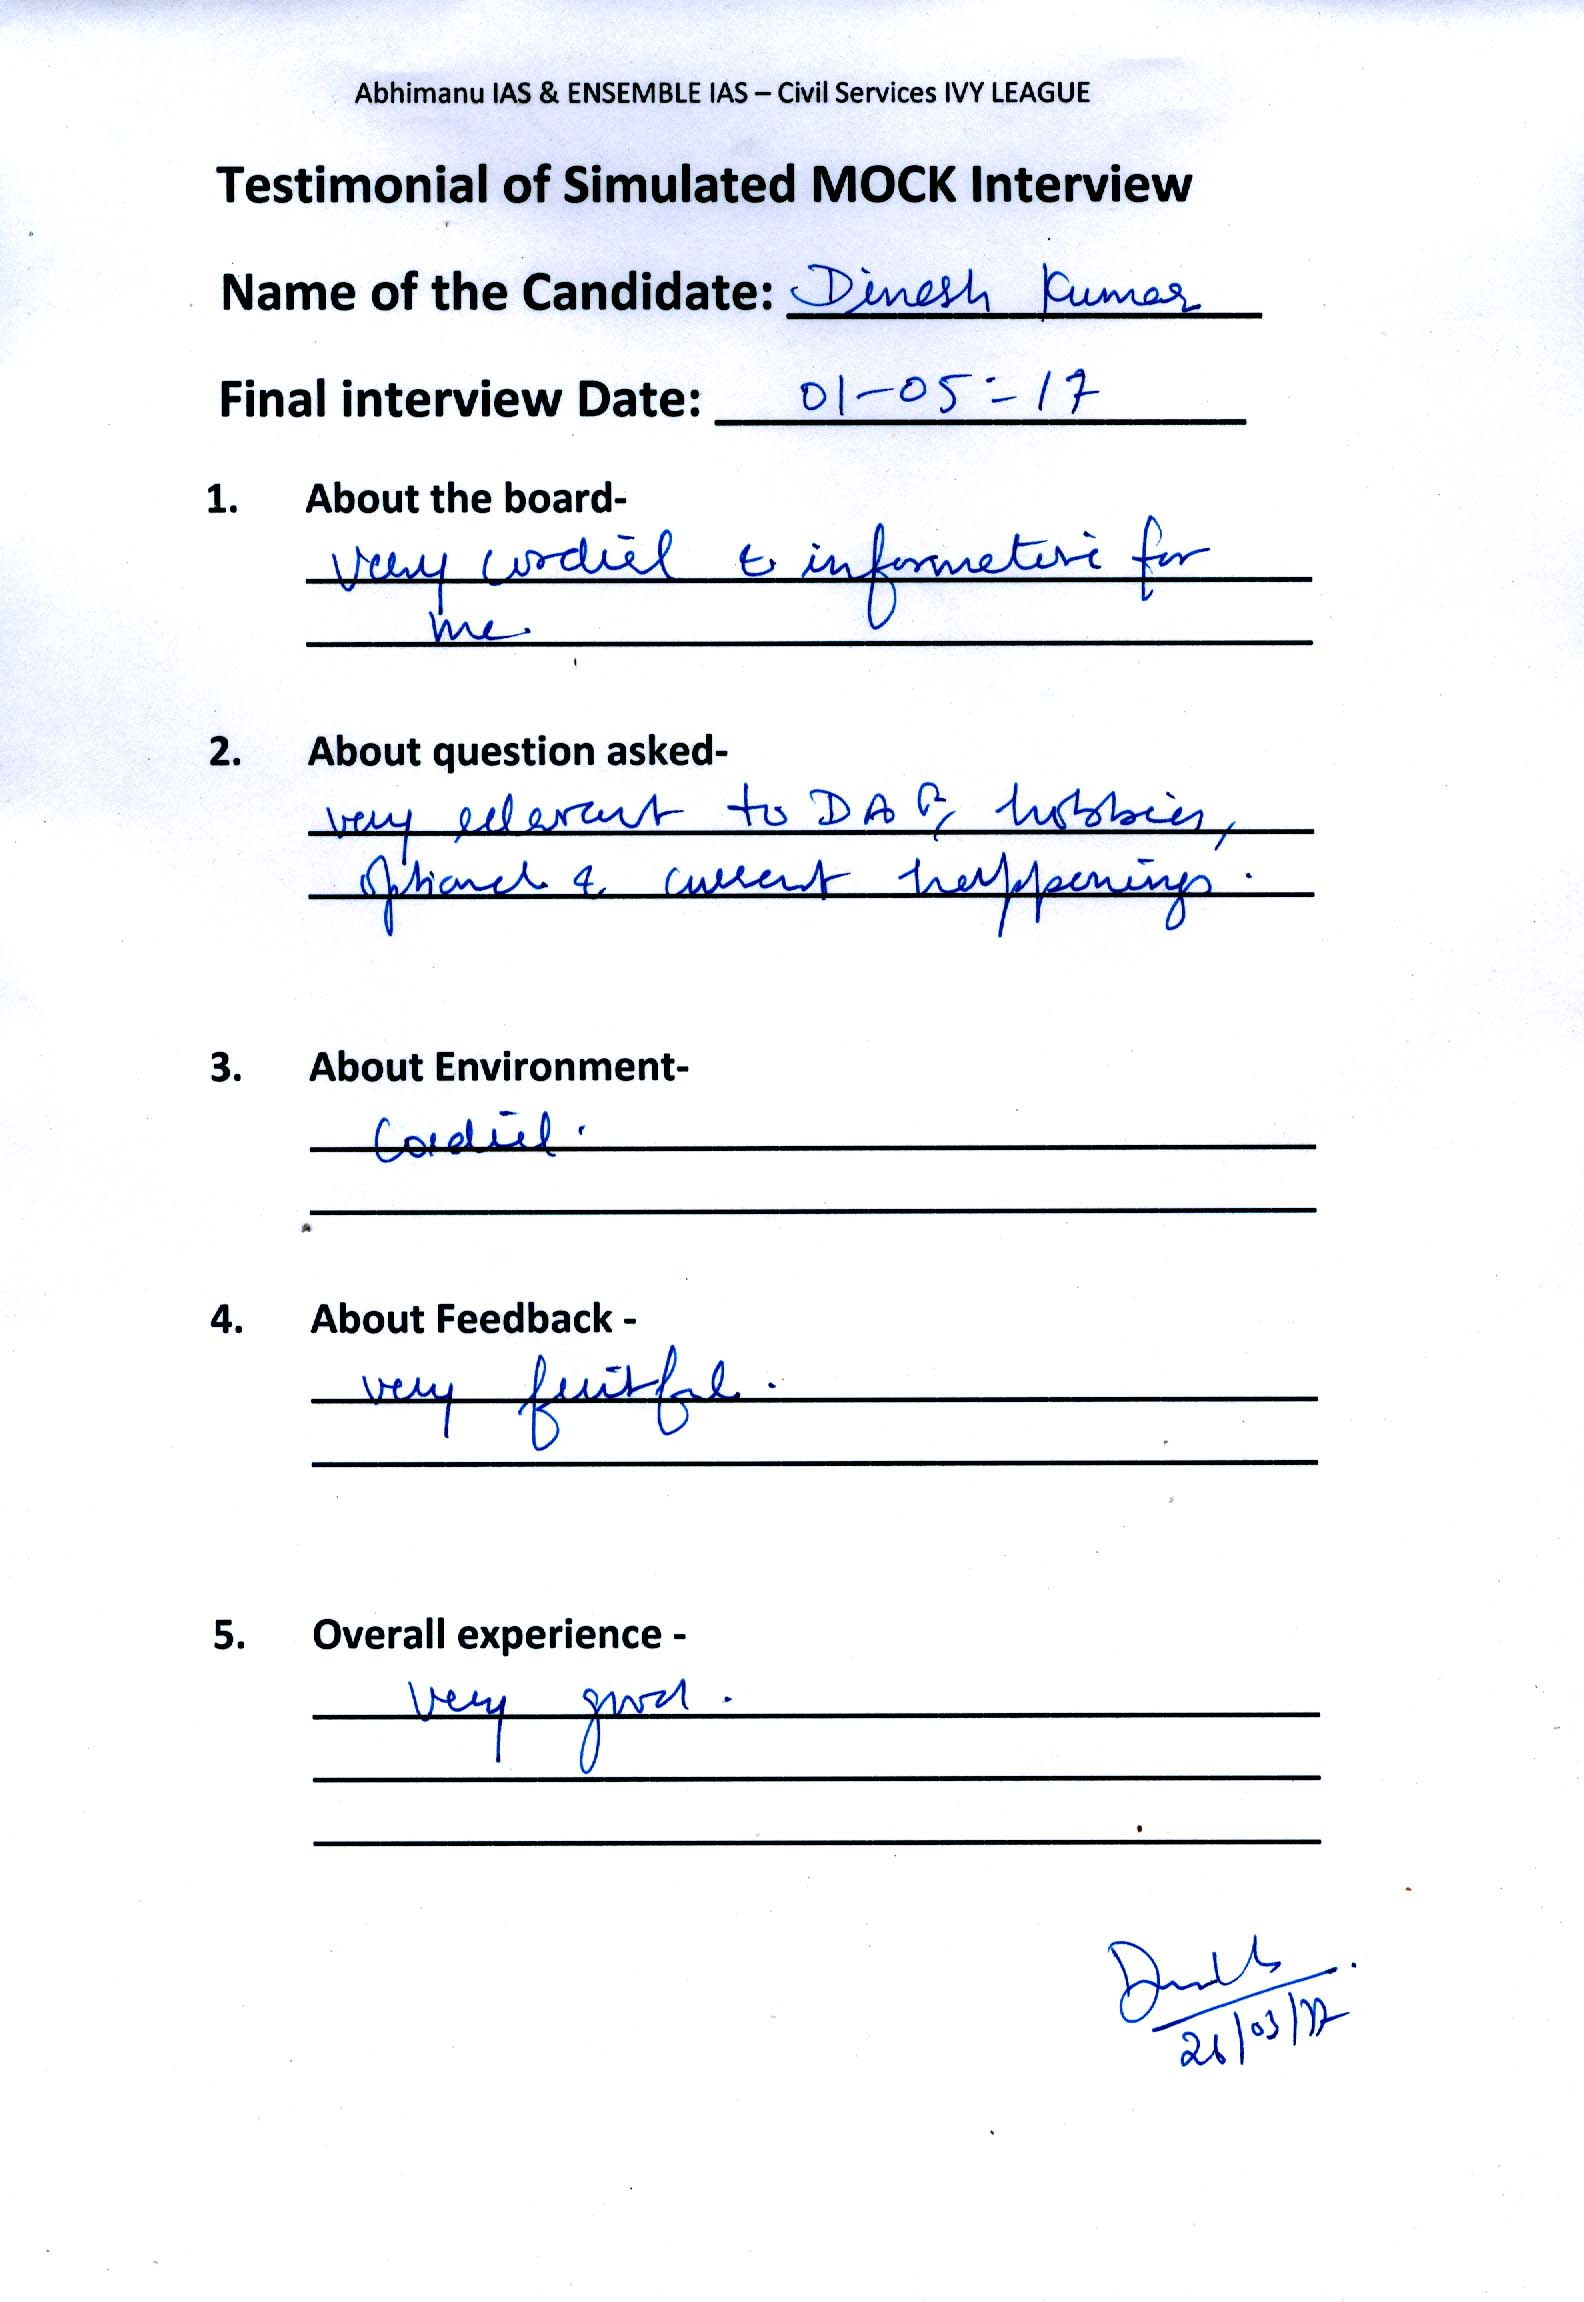 Interview Testimonial By- Dinesh Kumar